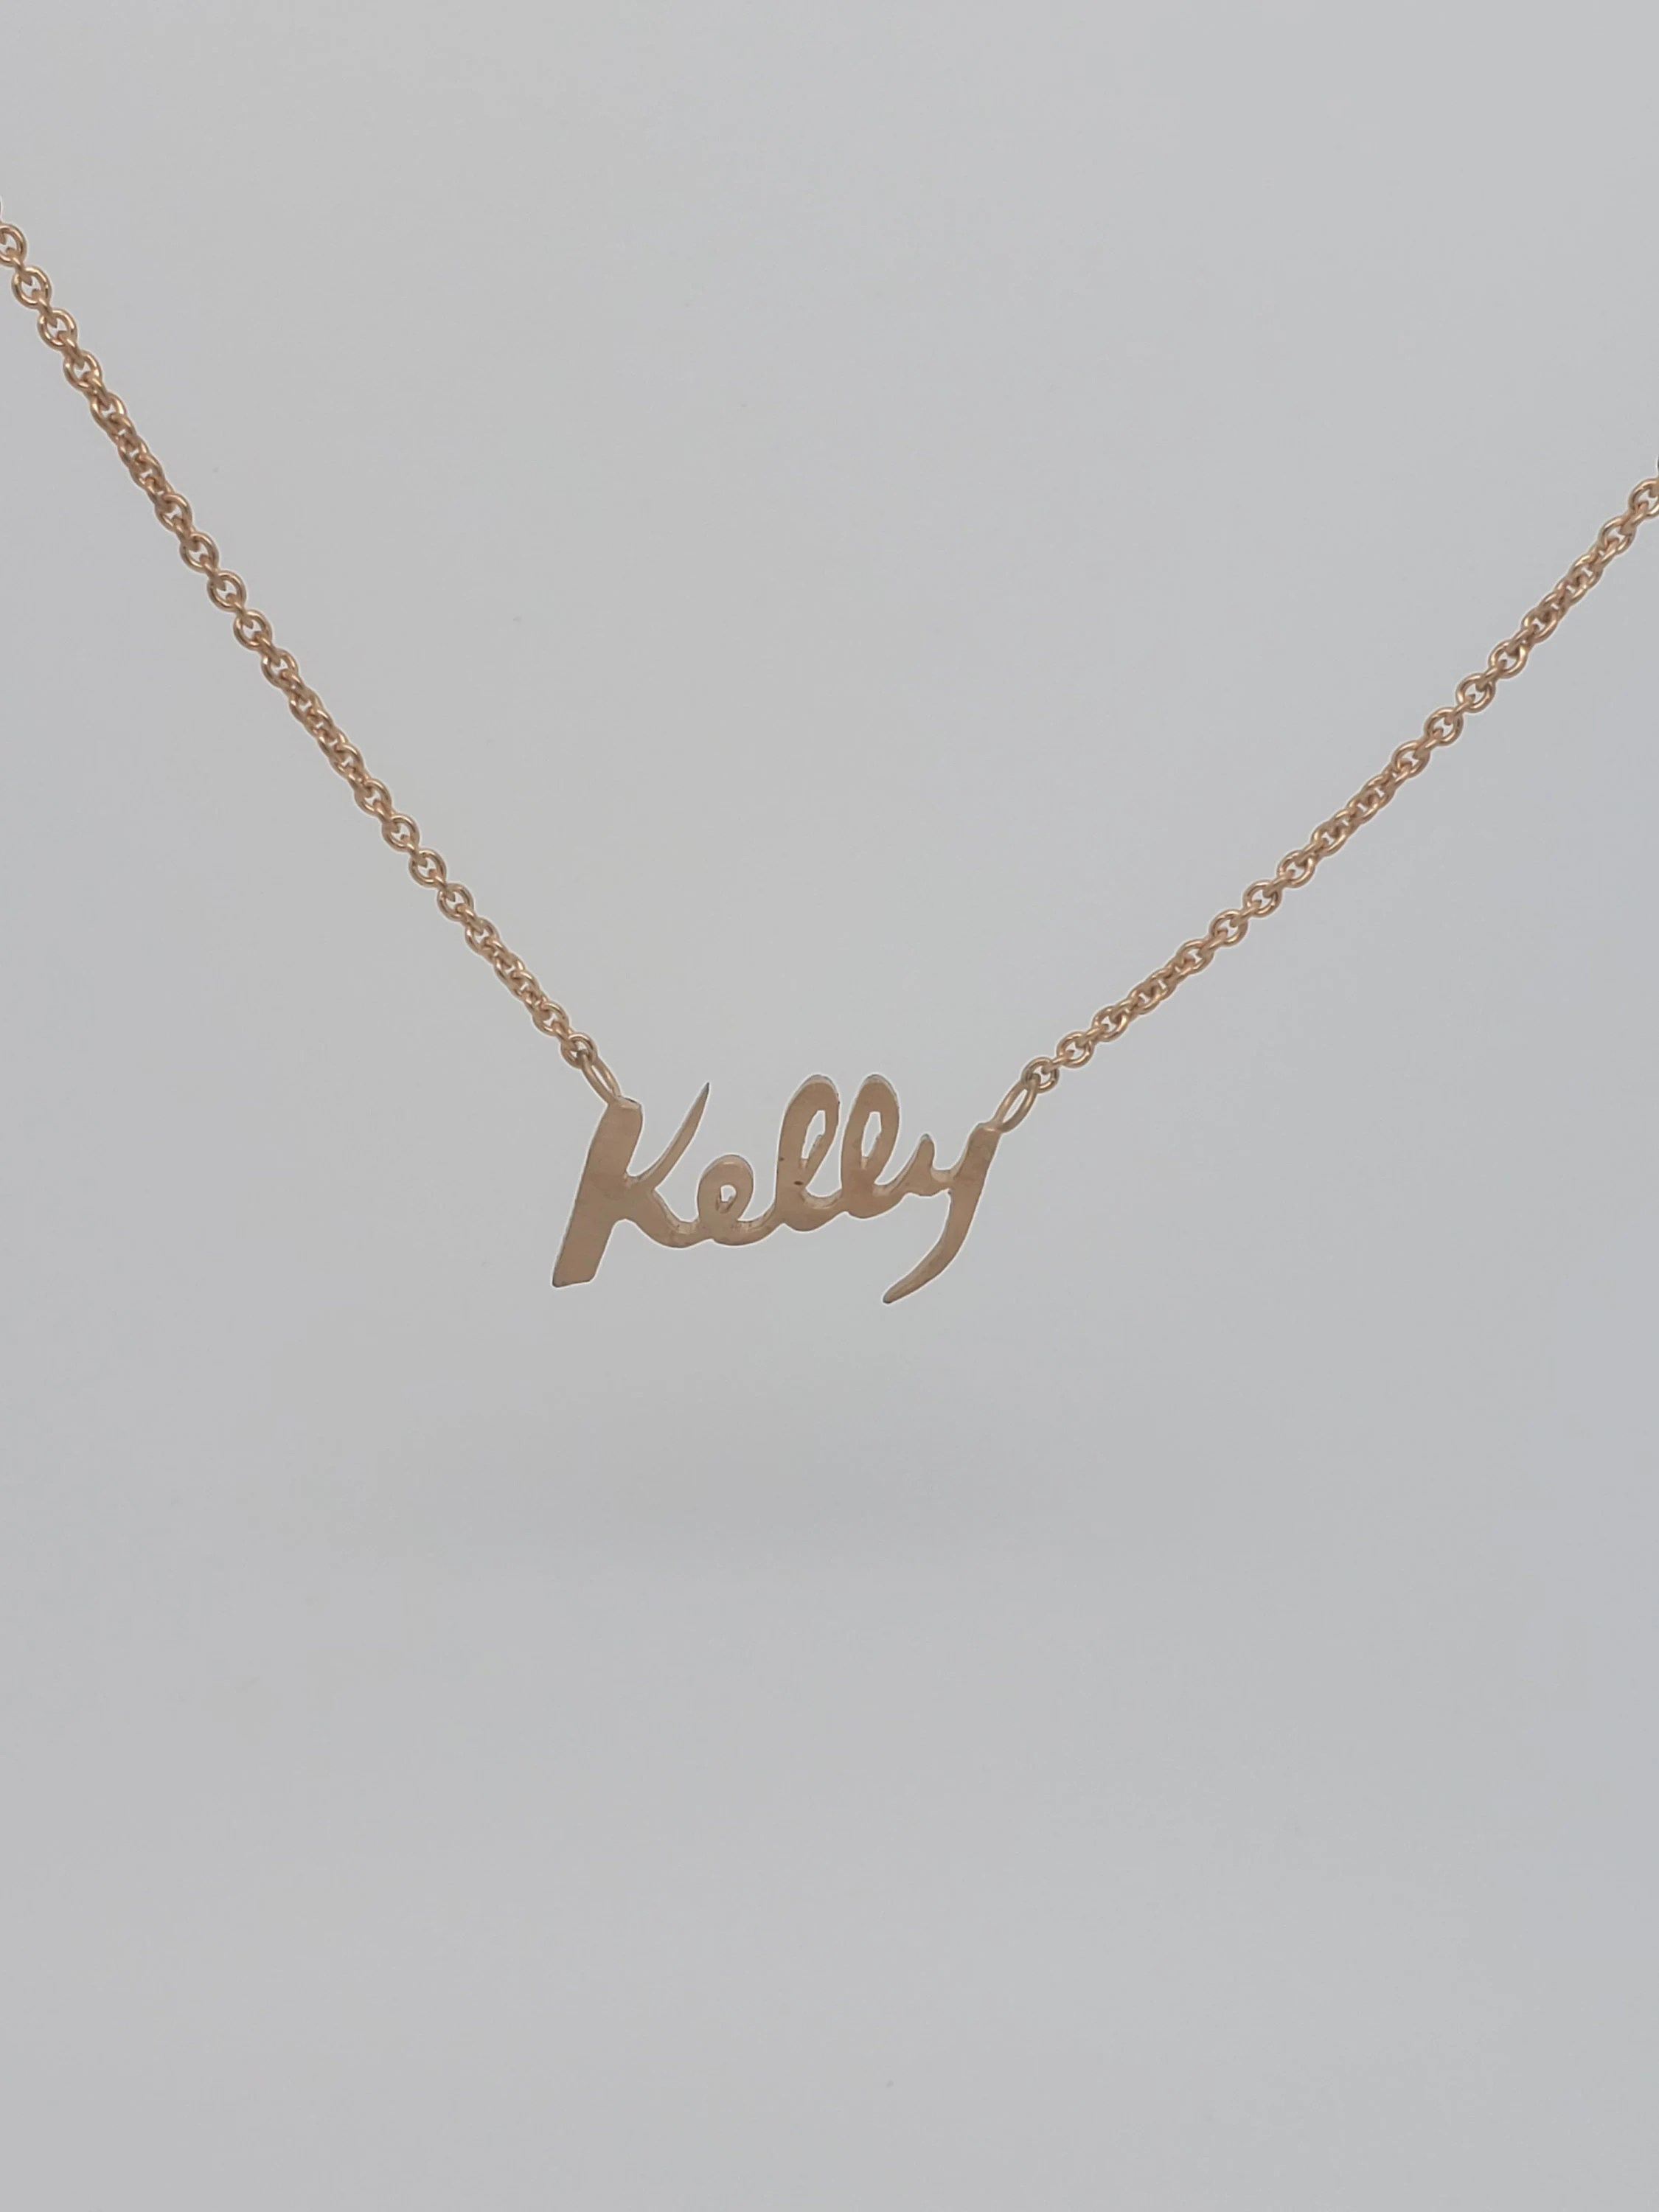 Nameplate Necklace Etsy : nameplate, necklace, Nameplate, Necklace